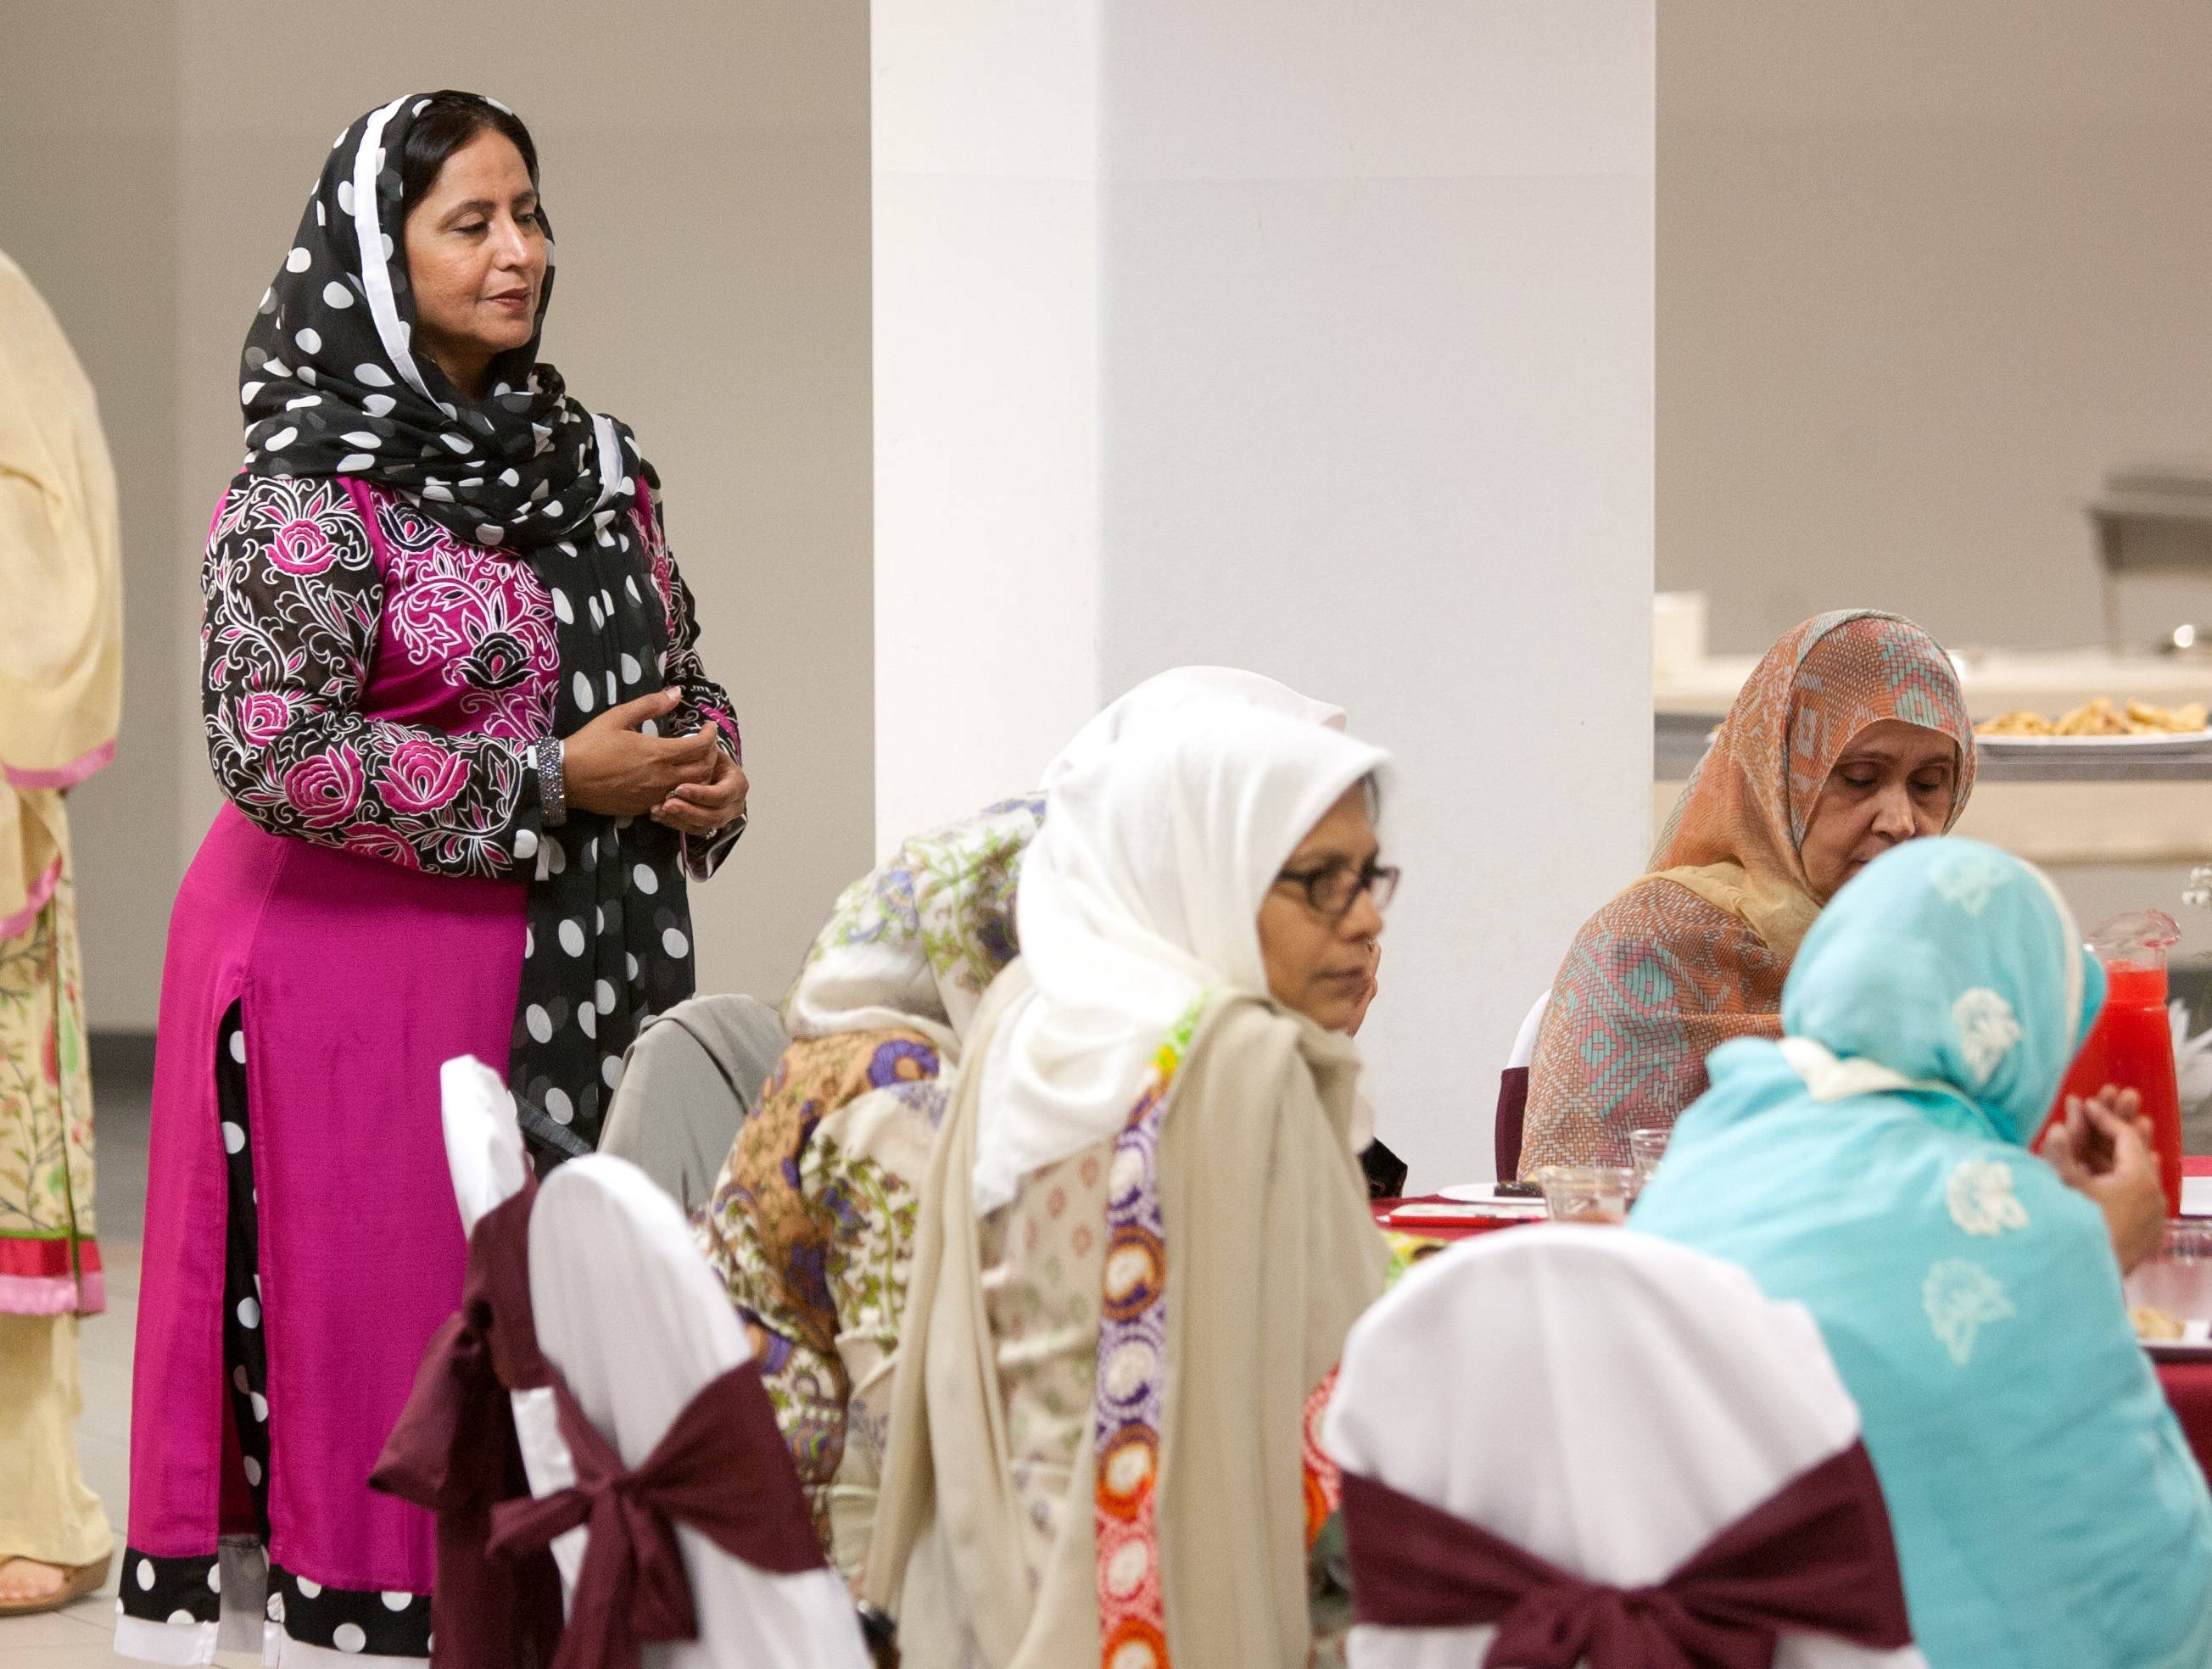 Sameena Shoukathullah, left, prays during a breaking of the fast Friday in celebration of Ramadan at the Islamic Foundation in Villa Park.